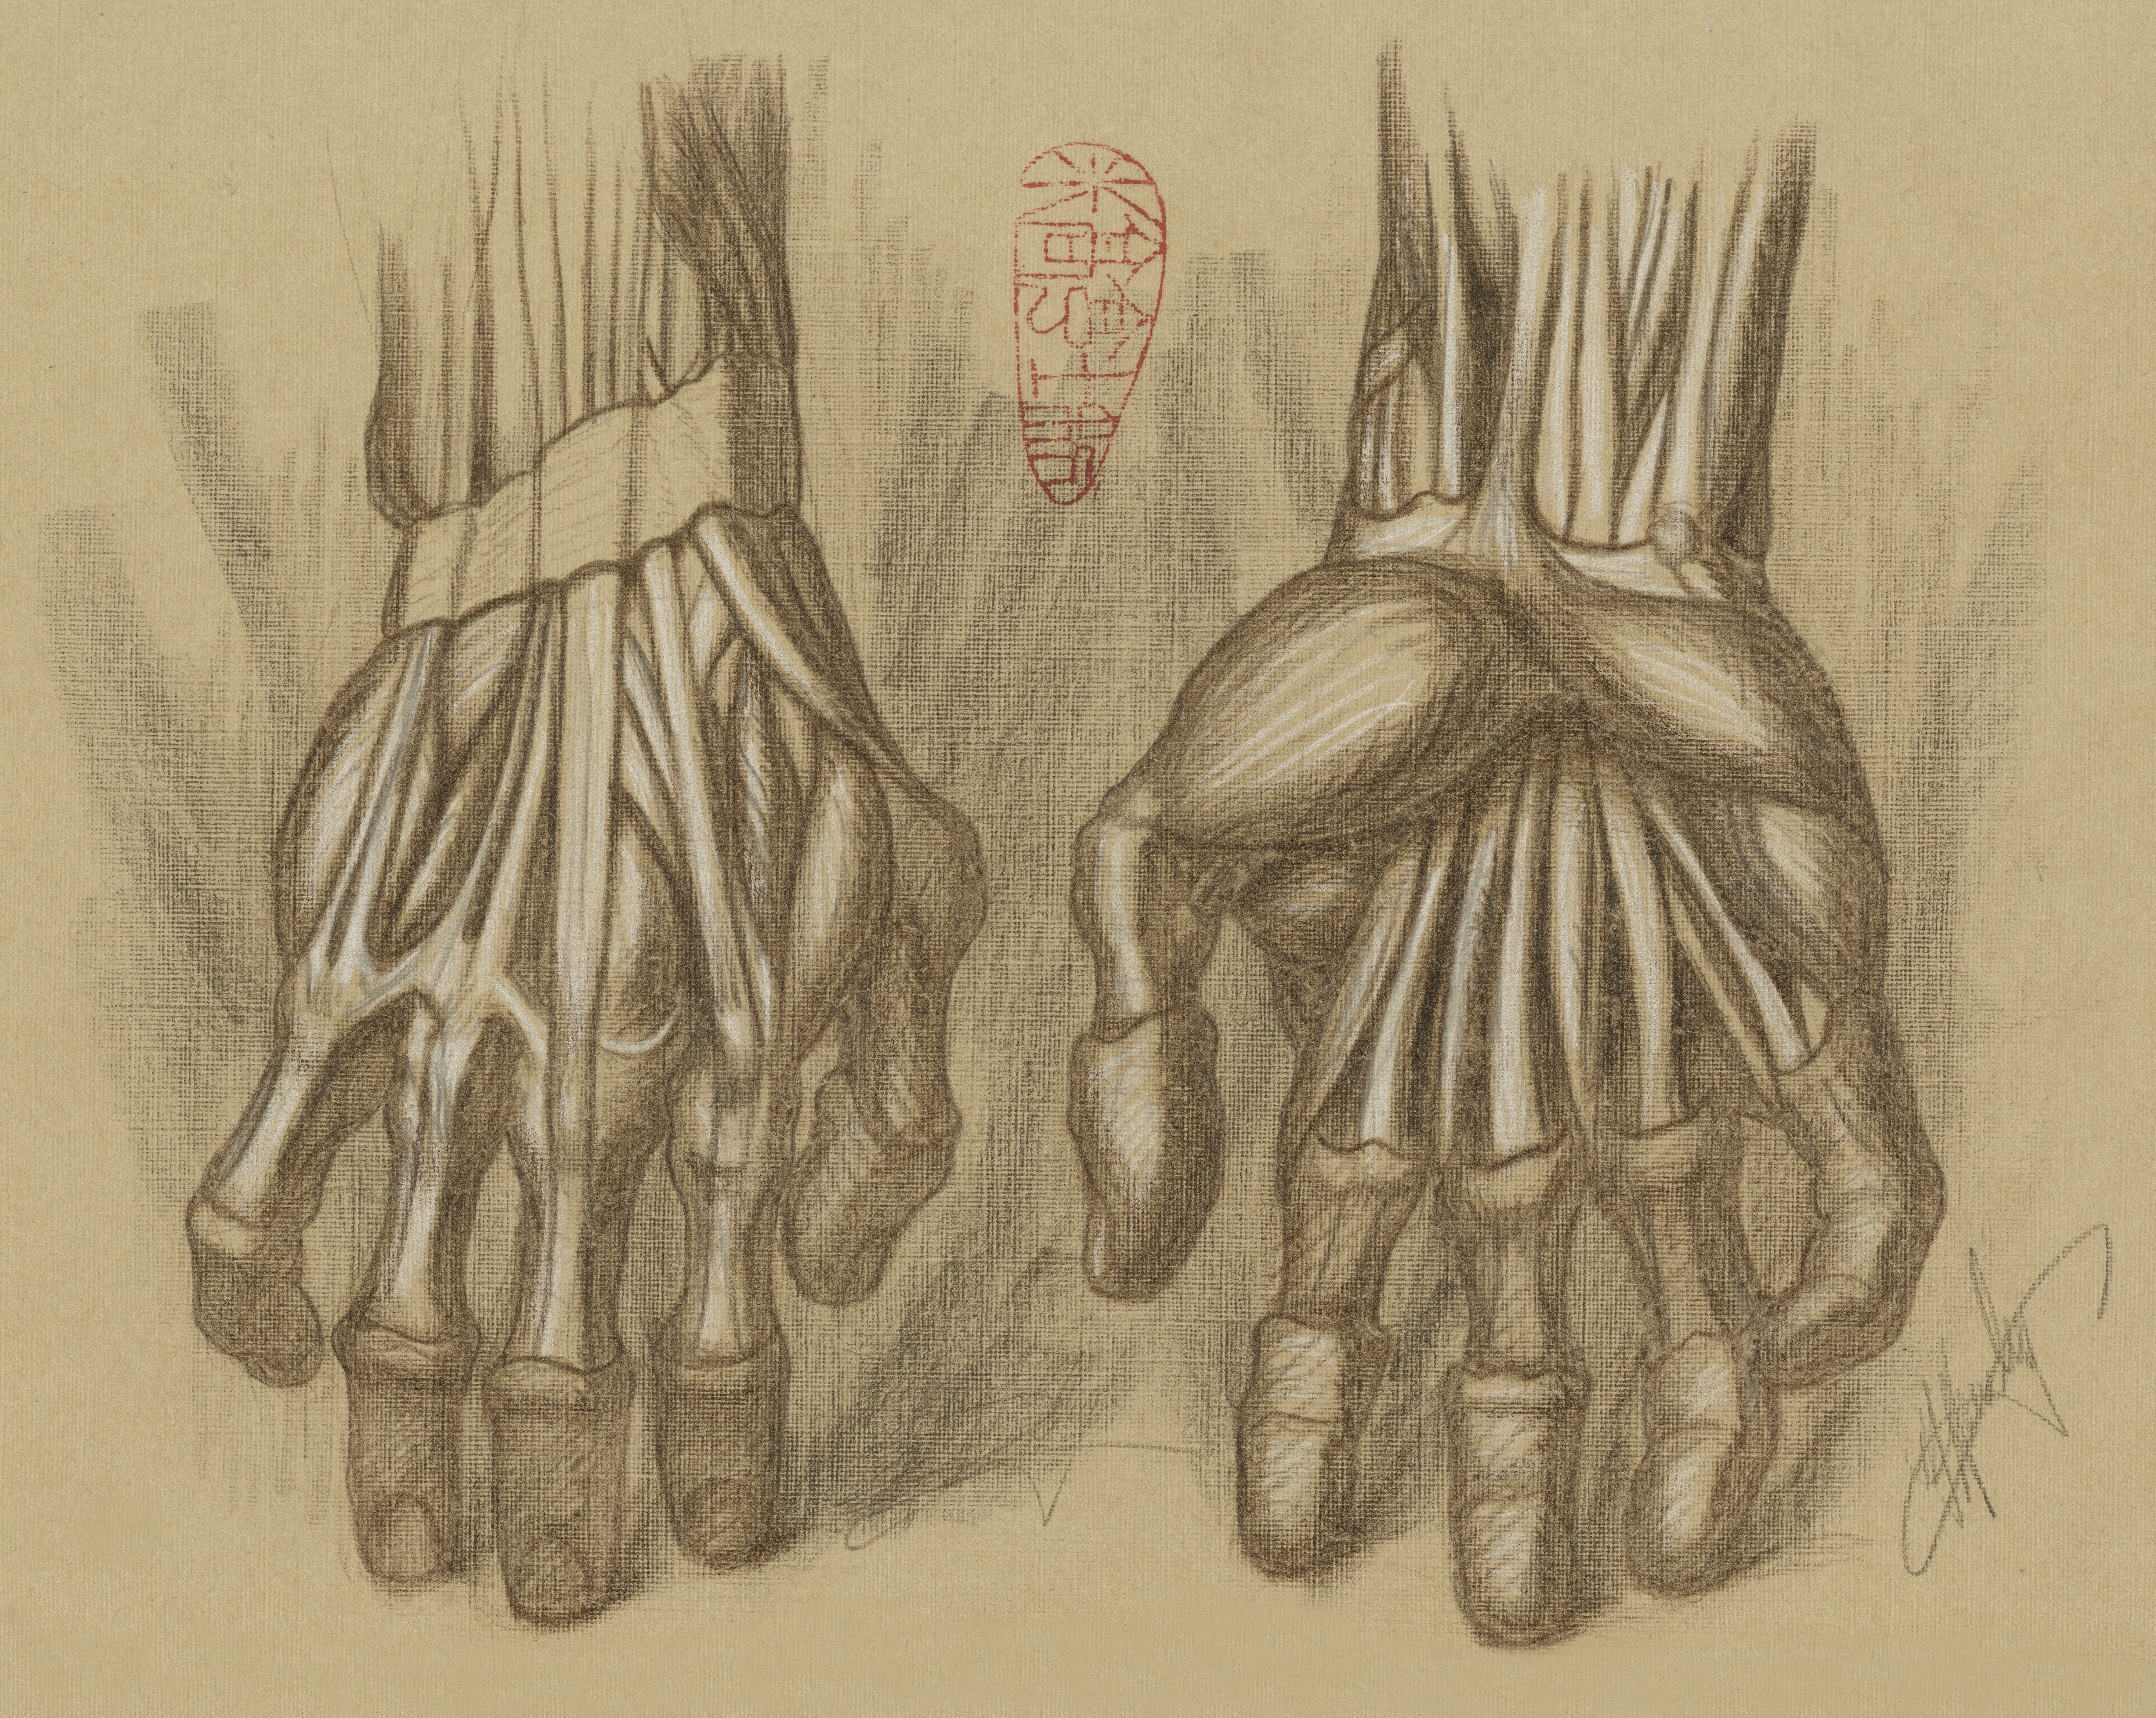 Anatomical Hand Study by Michael Hensley | Anatomy Drawings, Michael ...